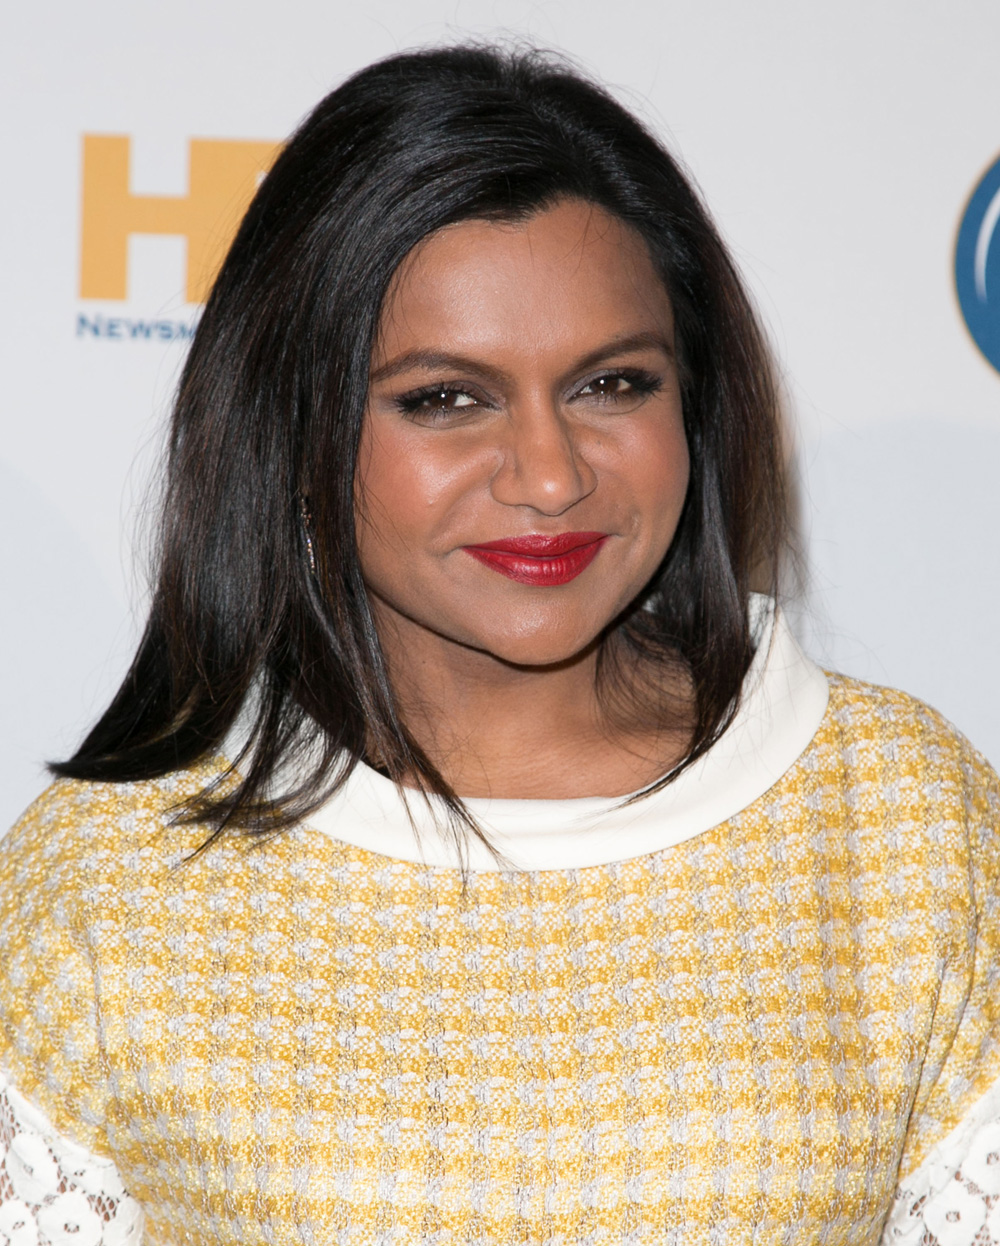 Best red lip: Mindy Kaling